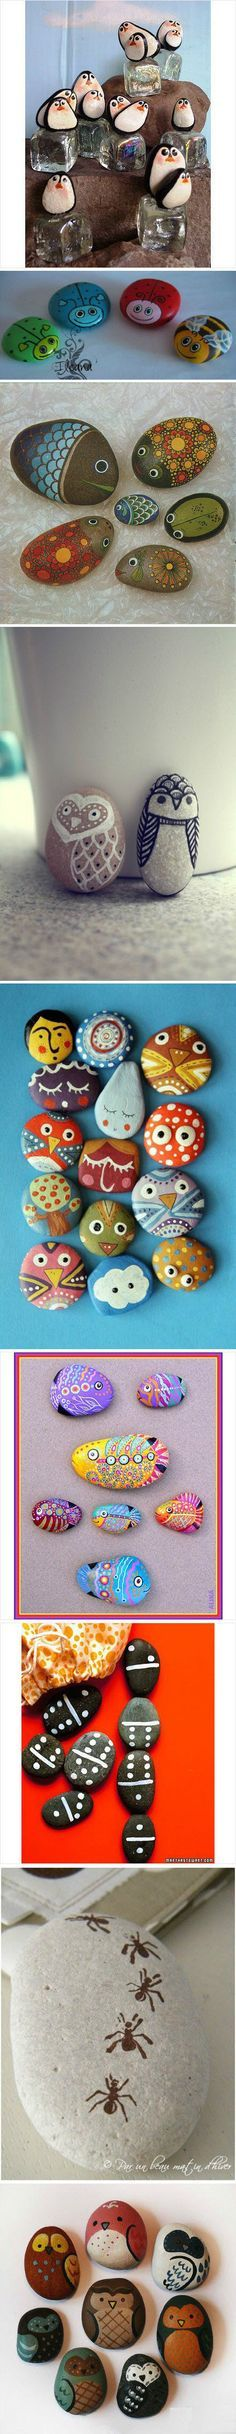 painted rocks. great kid project. and, yes, they won't look like this, but they'll have fun gathering the rocks and painting whatever inspires on them.